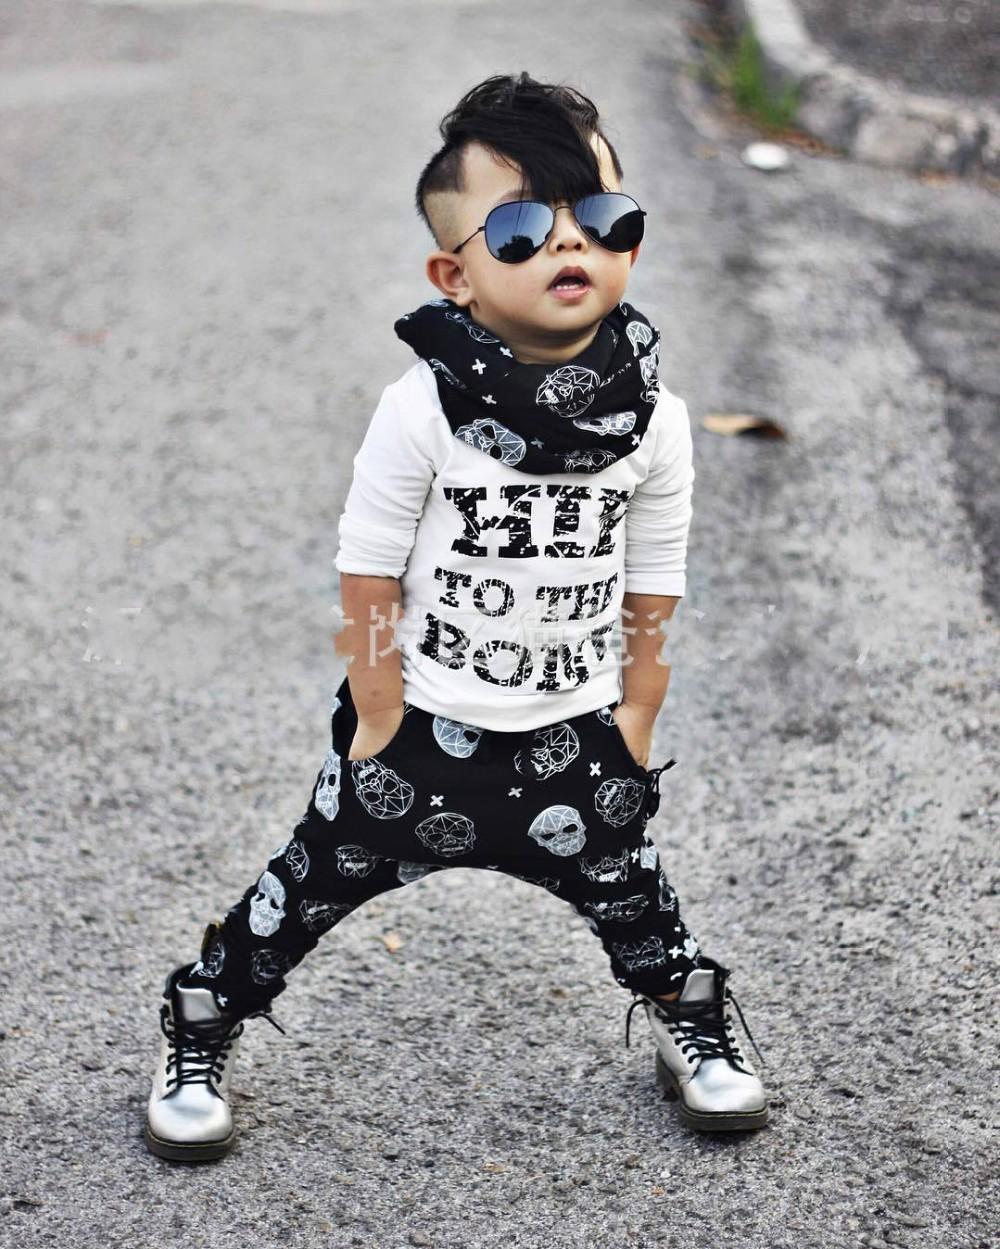 Autumn baby boy clothes cotton letters Long sleeved t-shirt+Skull head pants newborn infant suit Baby girl clothing 2pcs set newborn baby boy girl 5 pcs clothing set cotton cartoon monk tops pants bib hats infant clothes 0 3 months hight quality